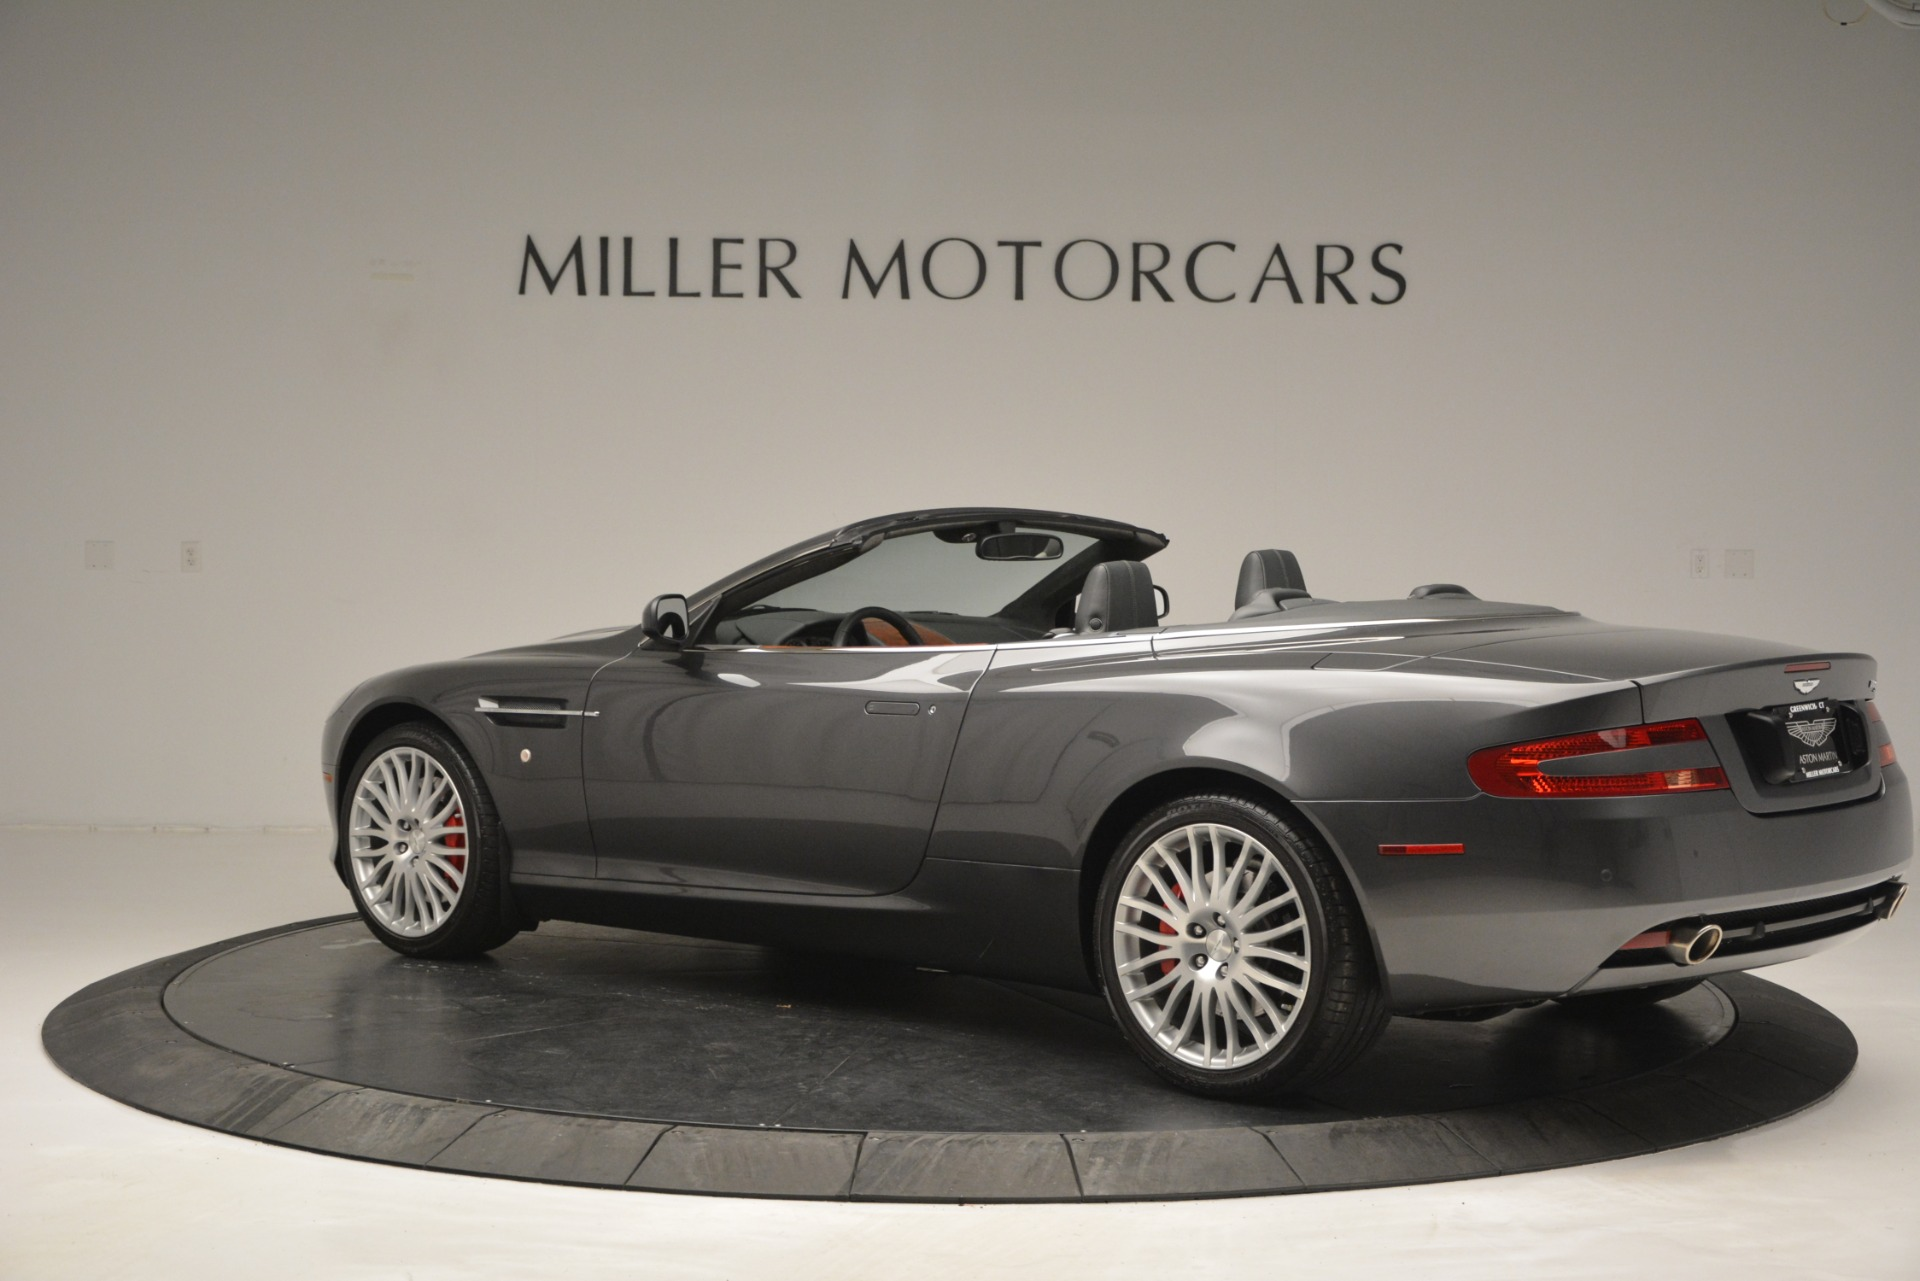 Used 2009 Aston Martin DB9 Convertible For Sale In Westport, CT 2930_p4